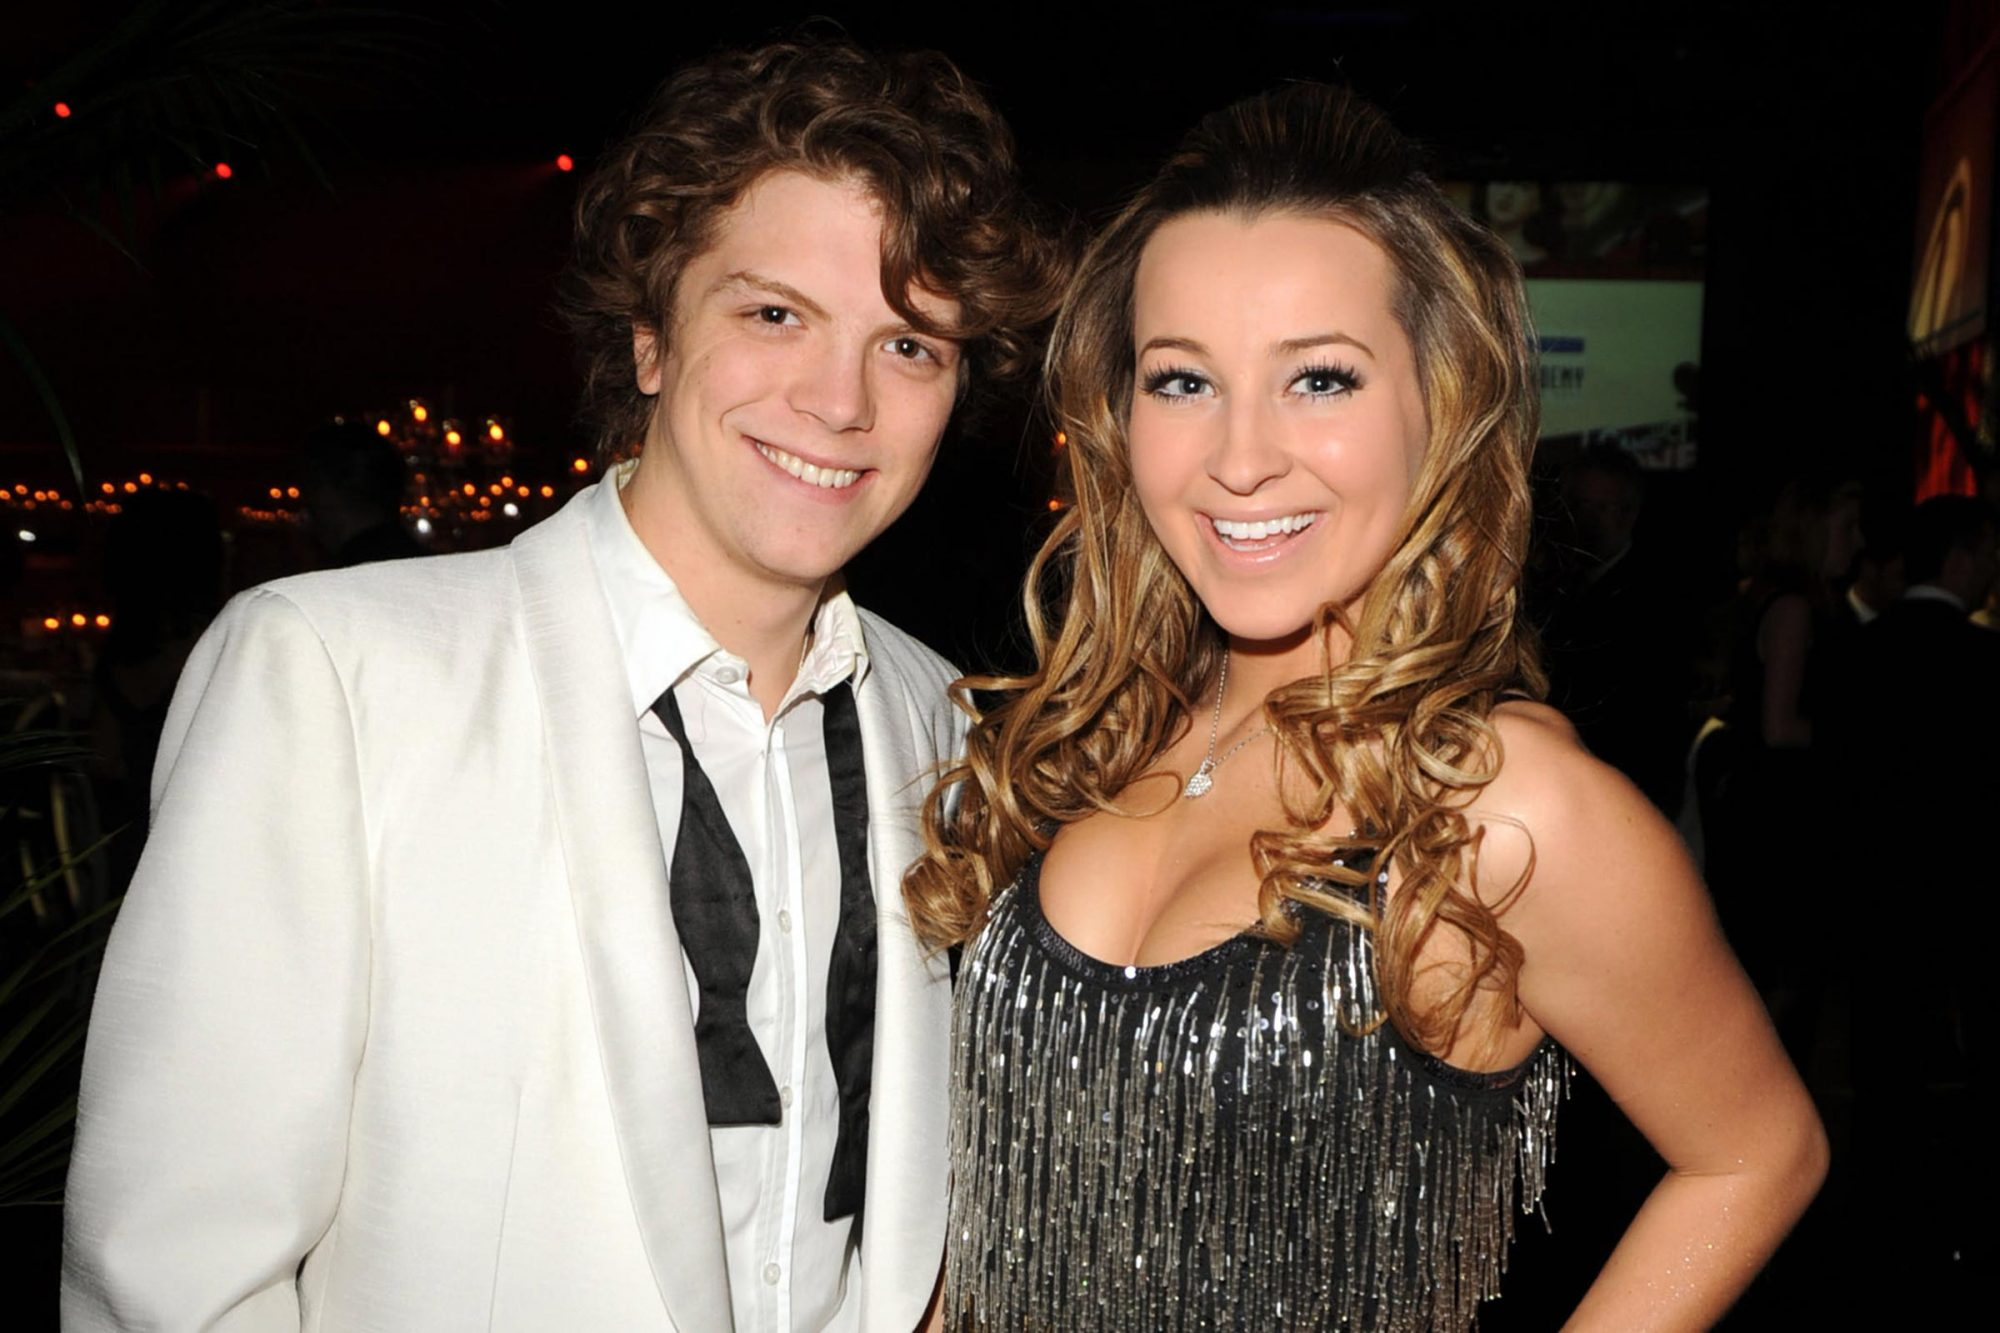 Michael Seater and Ashley Leggat